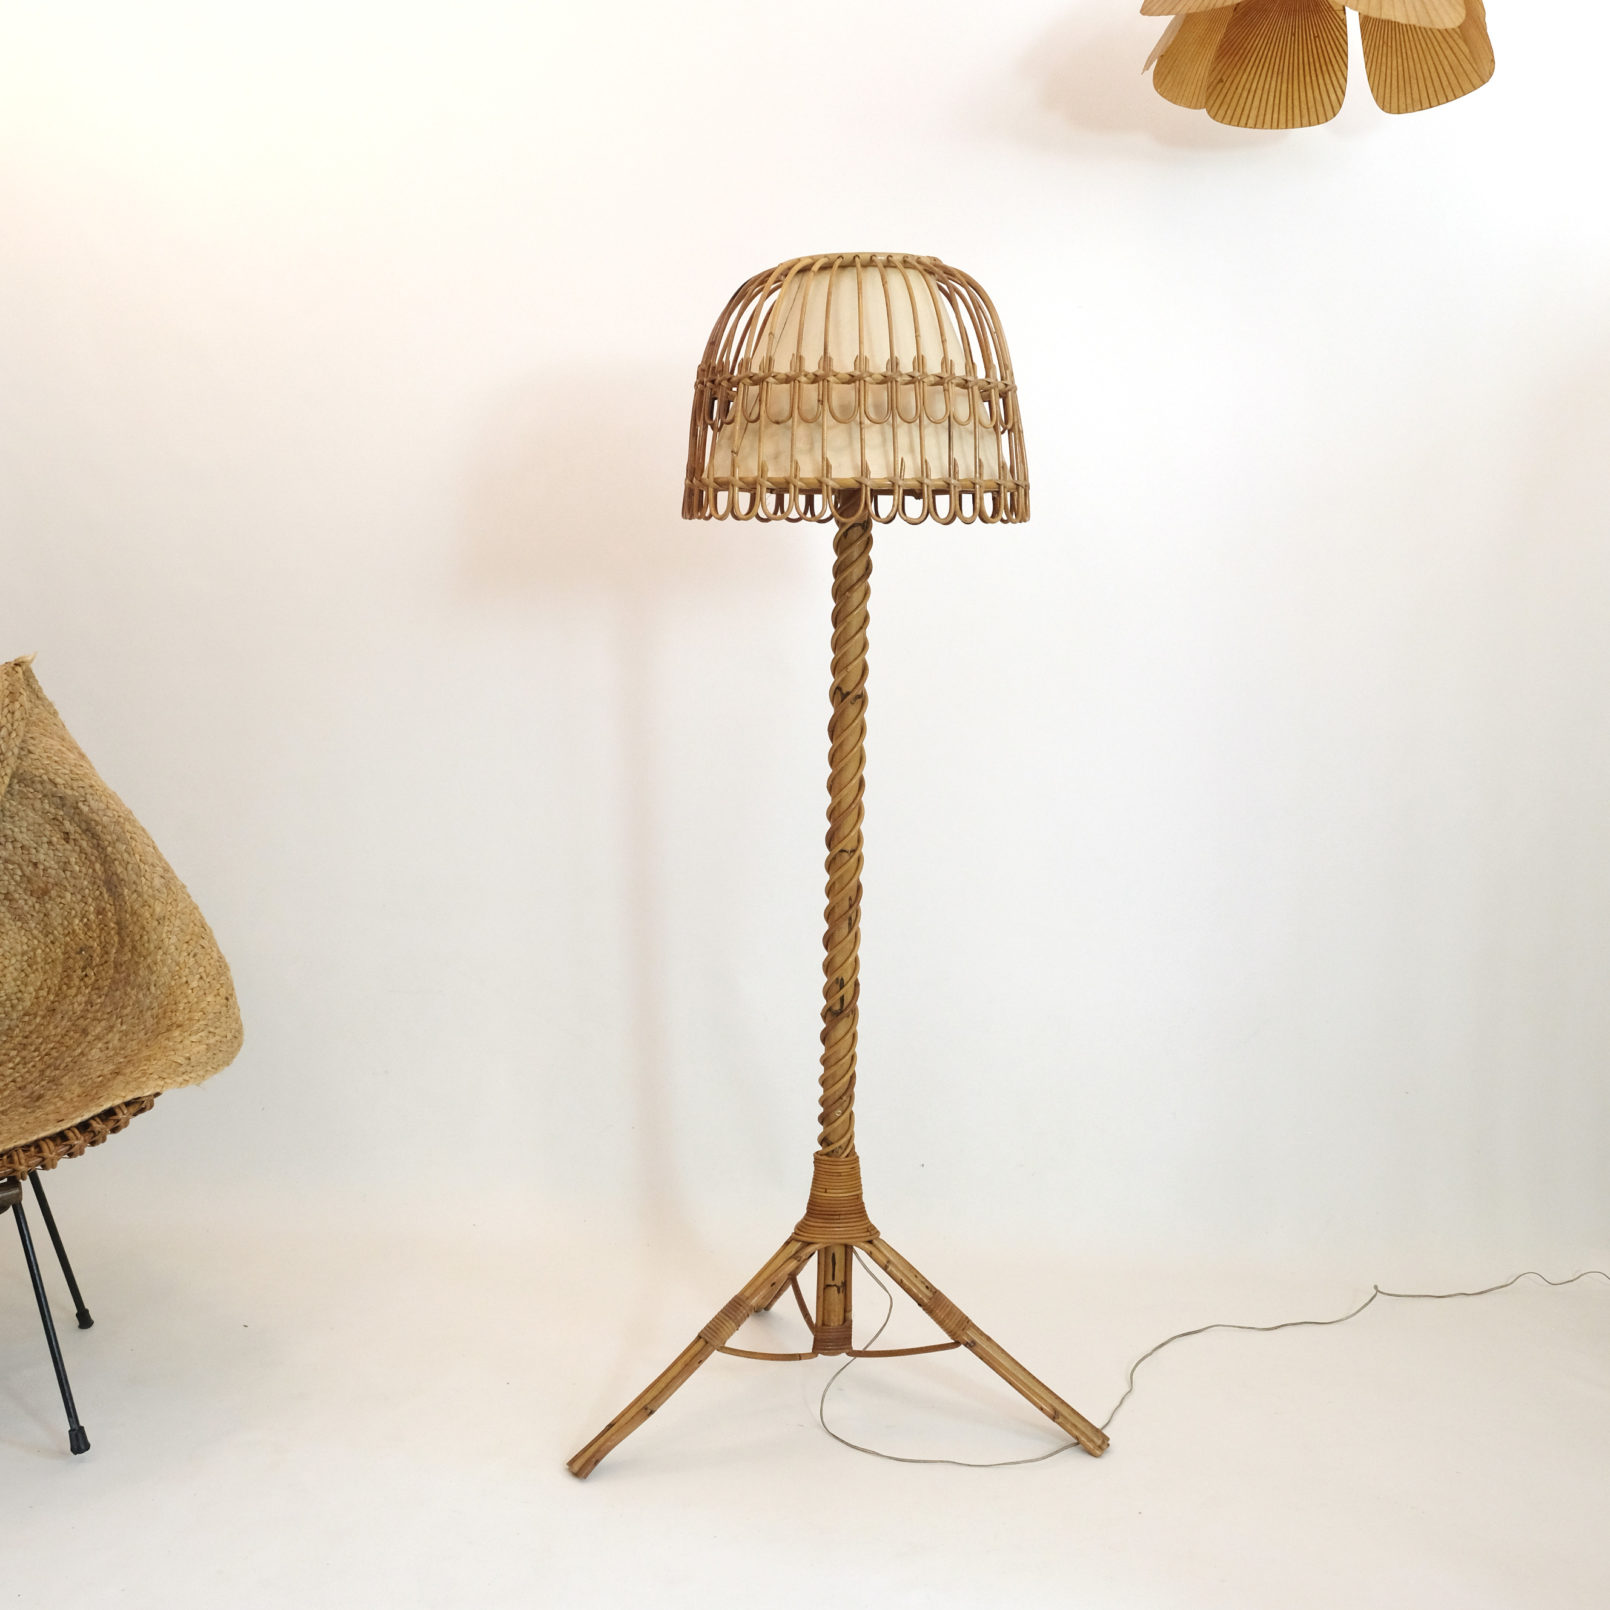 French rattan floor lamp from the 1950s.